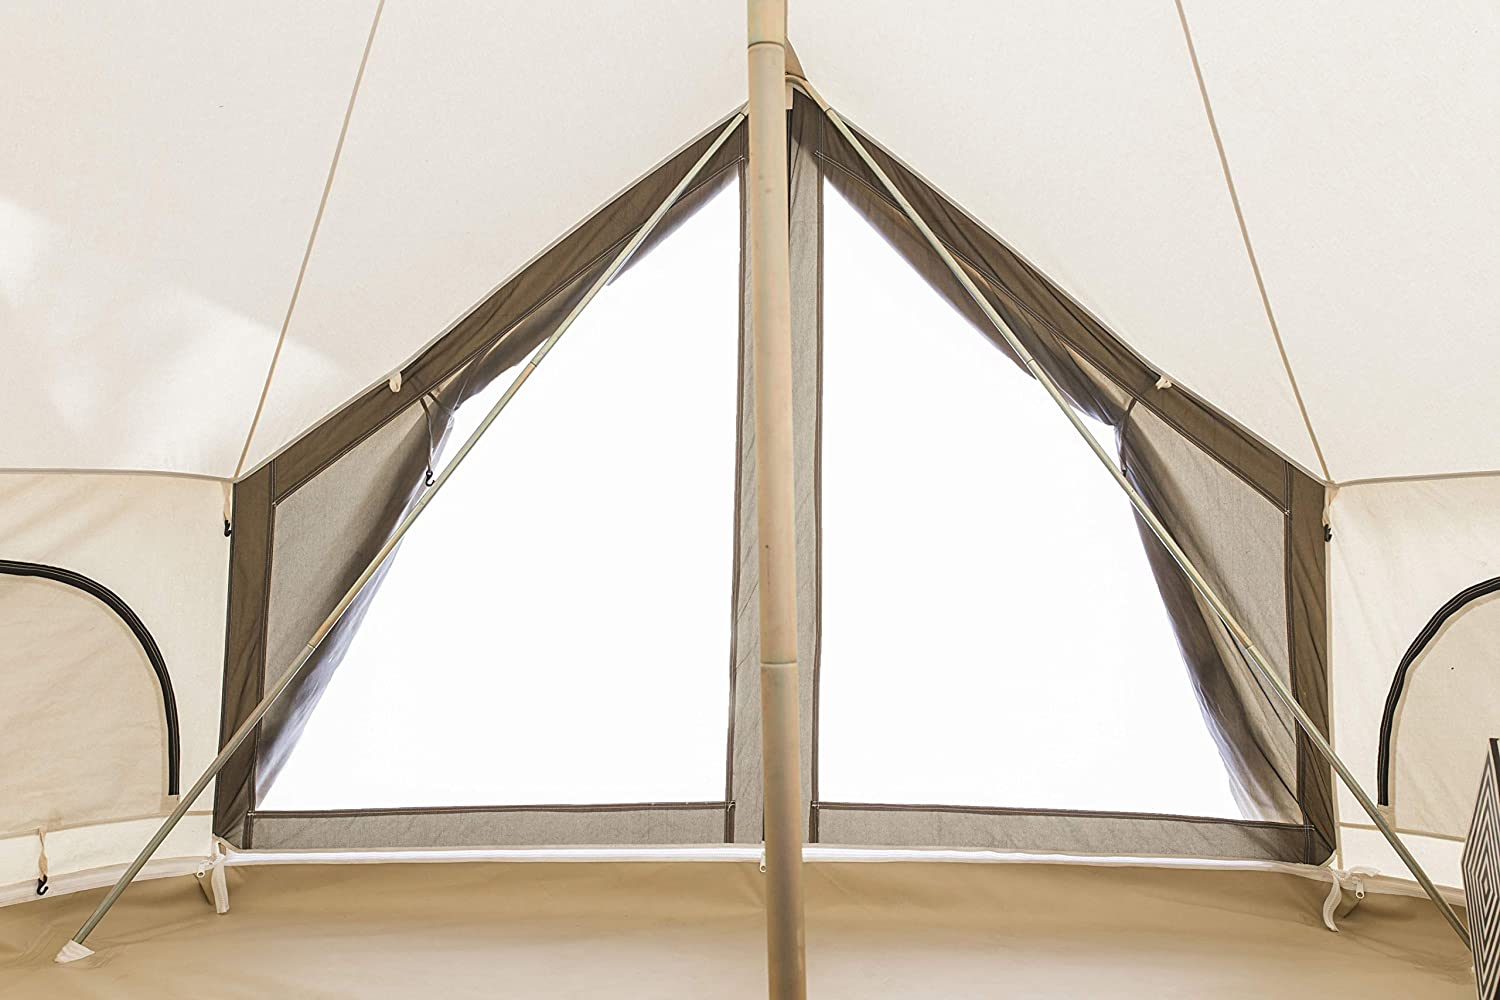 white duck avalon canvas bell tent